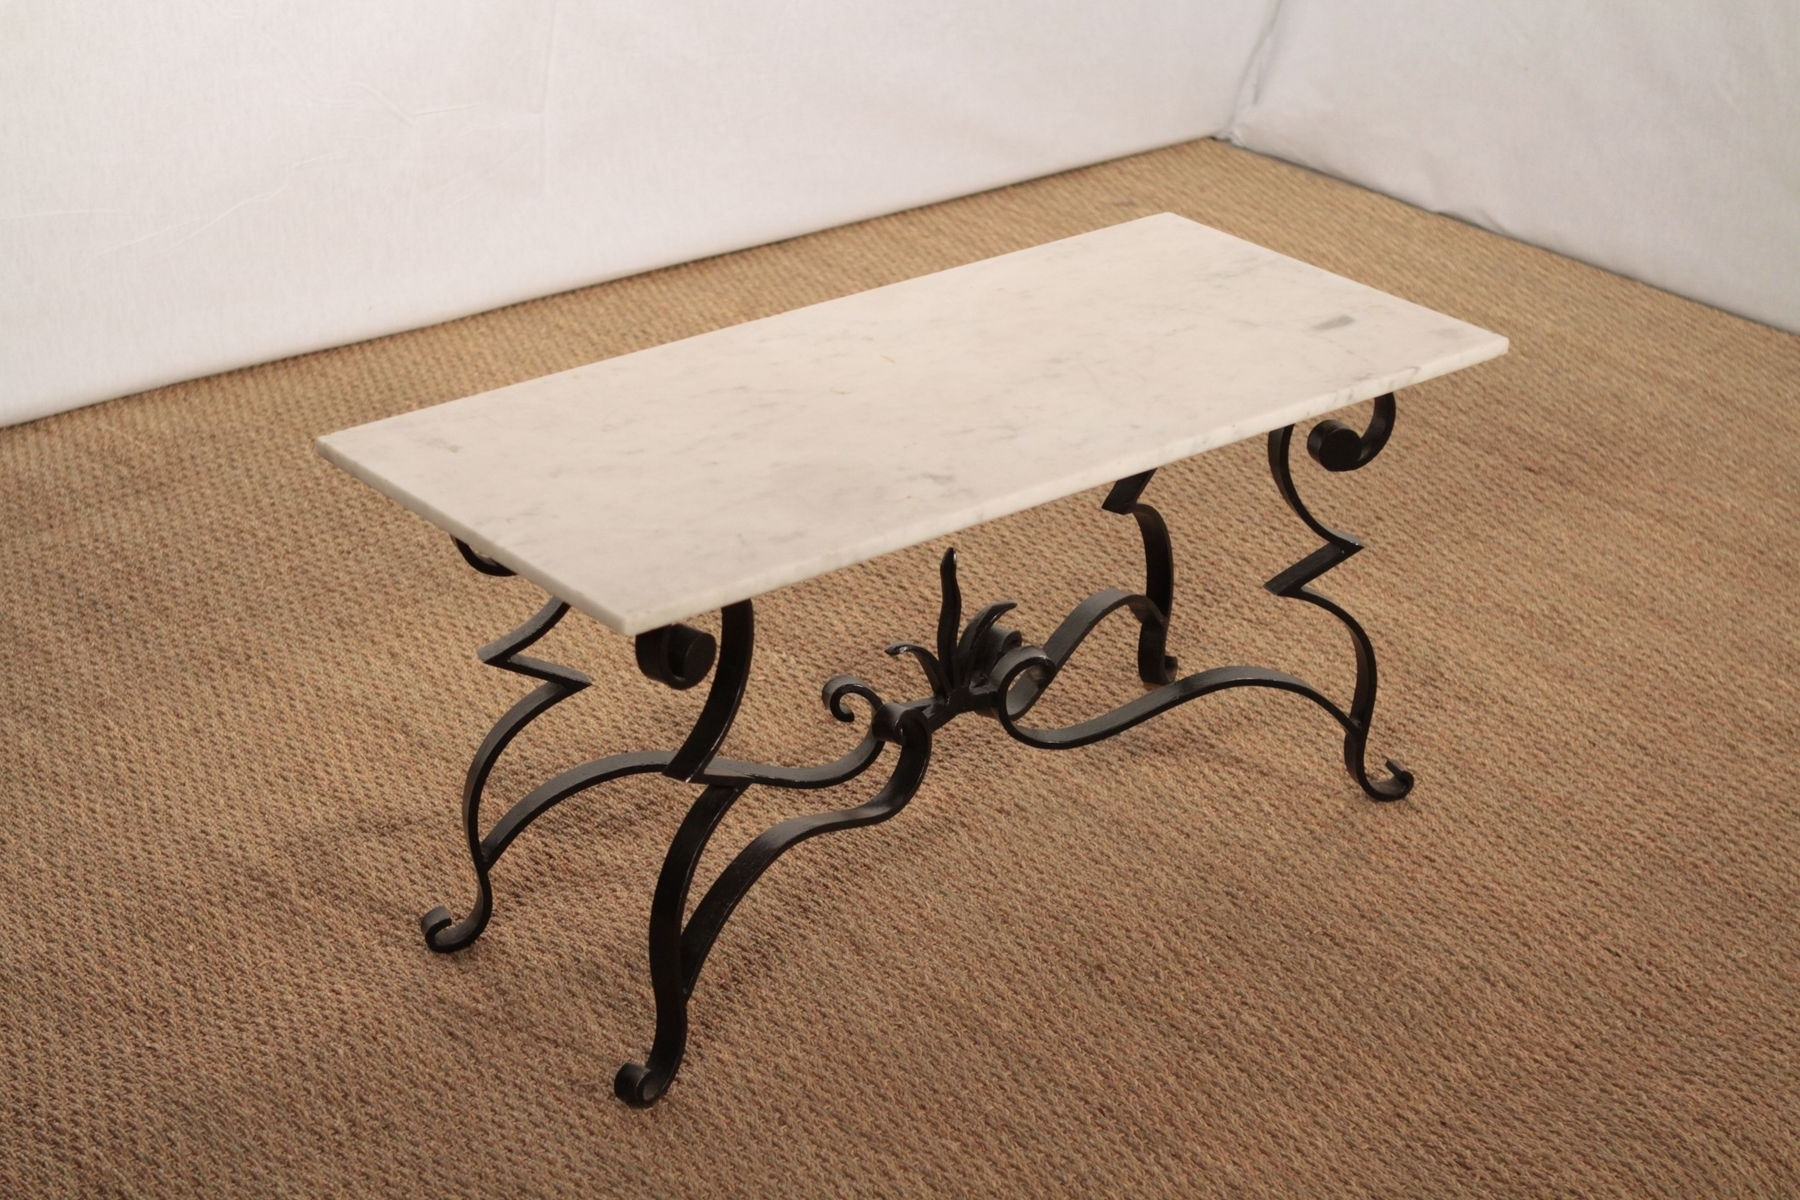 Wrought Iron And Marble Coffee Table For Sale At Pamono Regarding Current Iron Marble Coffee Tables (View 7 of 20)